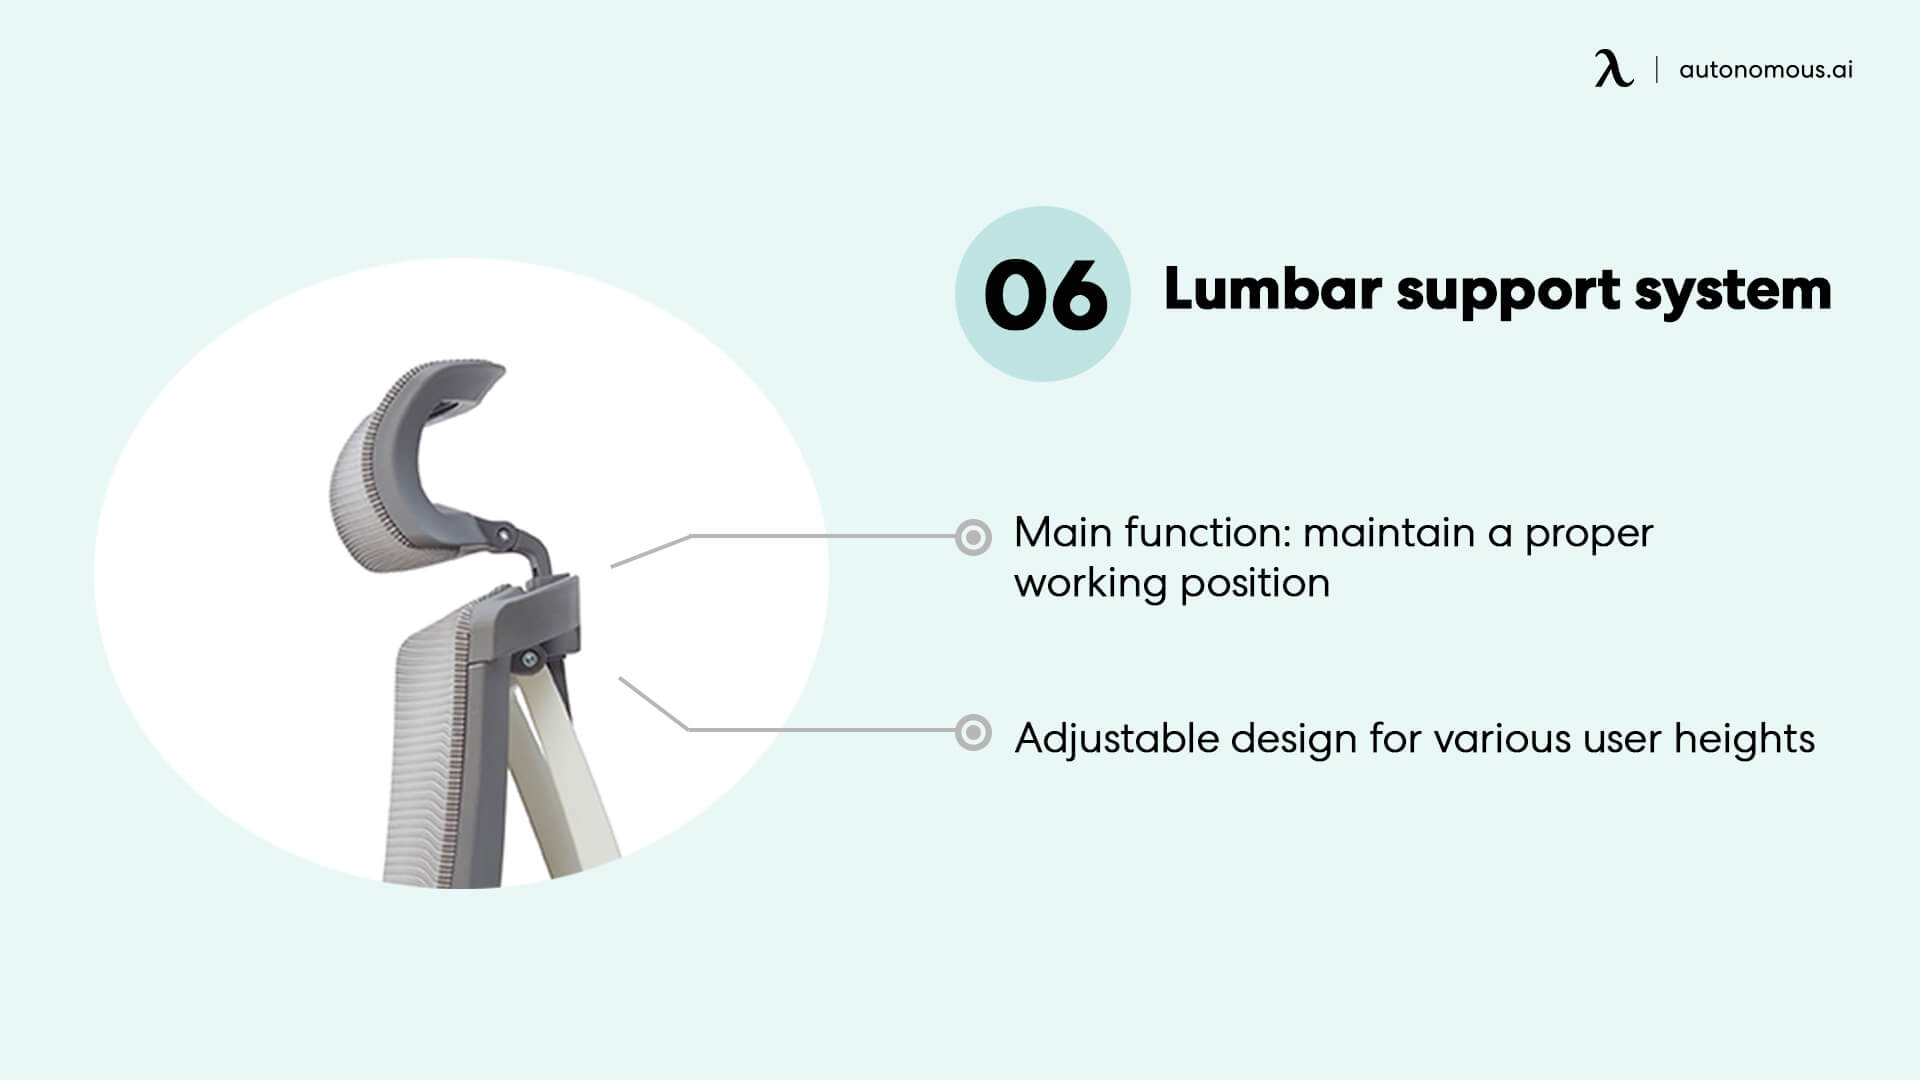 Lumbar support part helps adjust your sitting posture